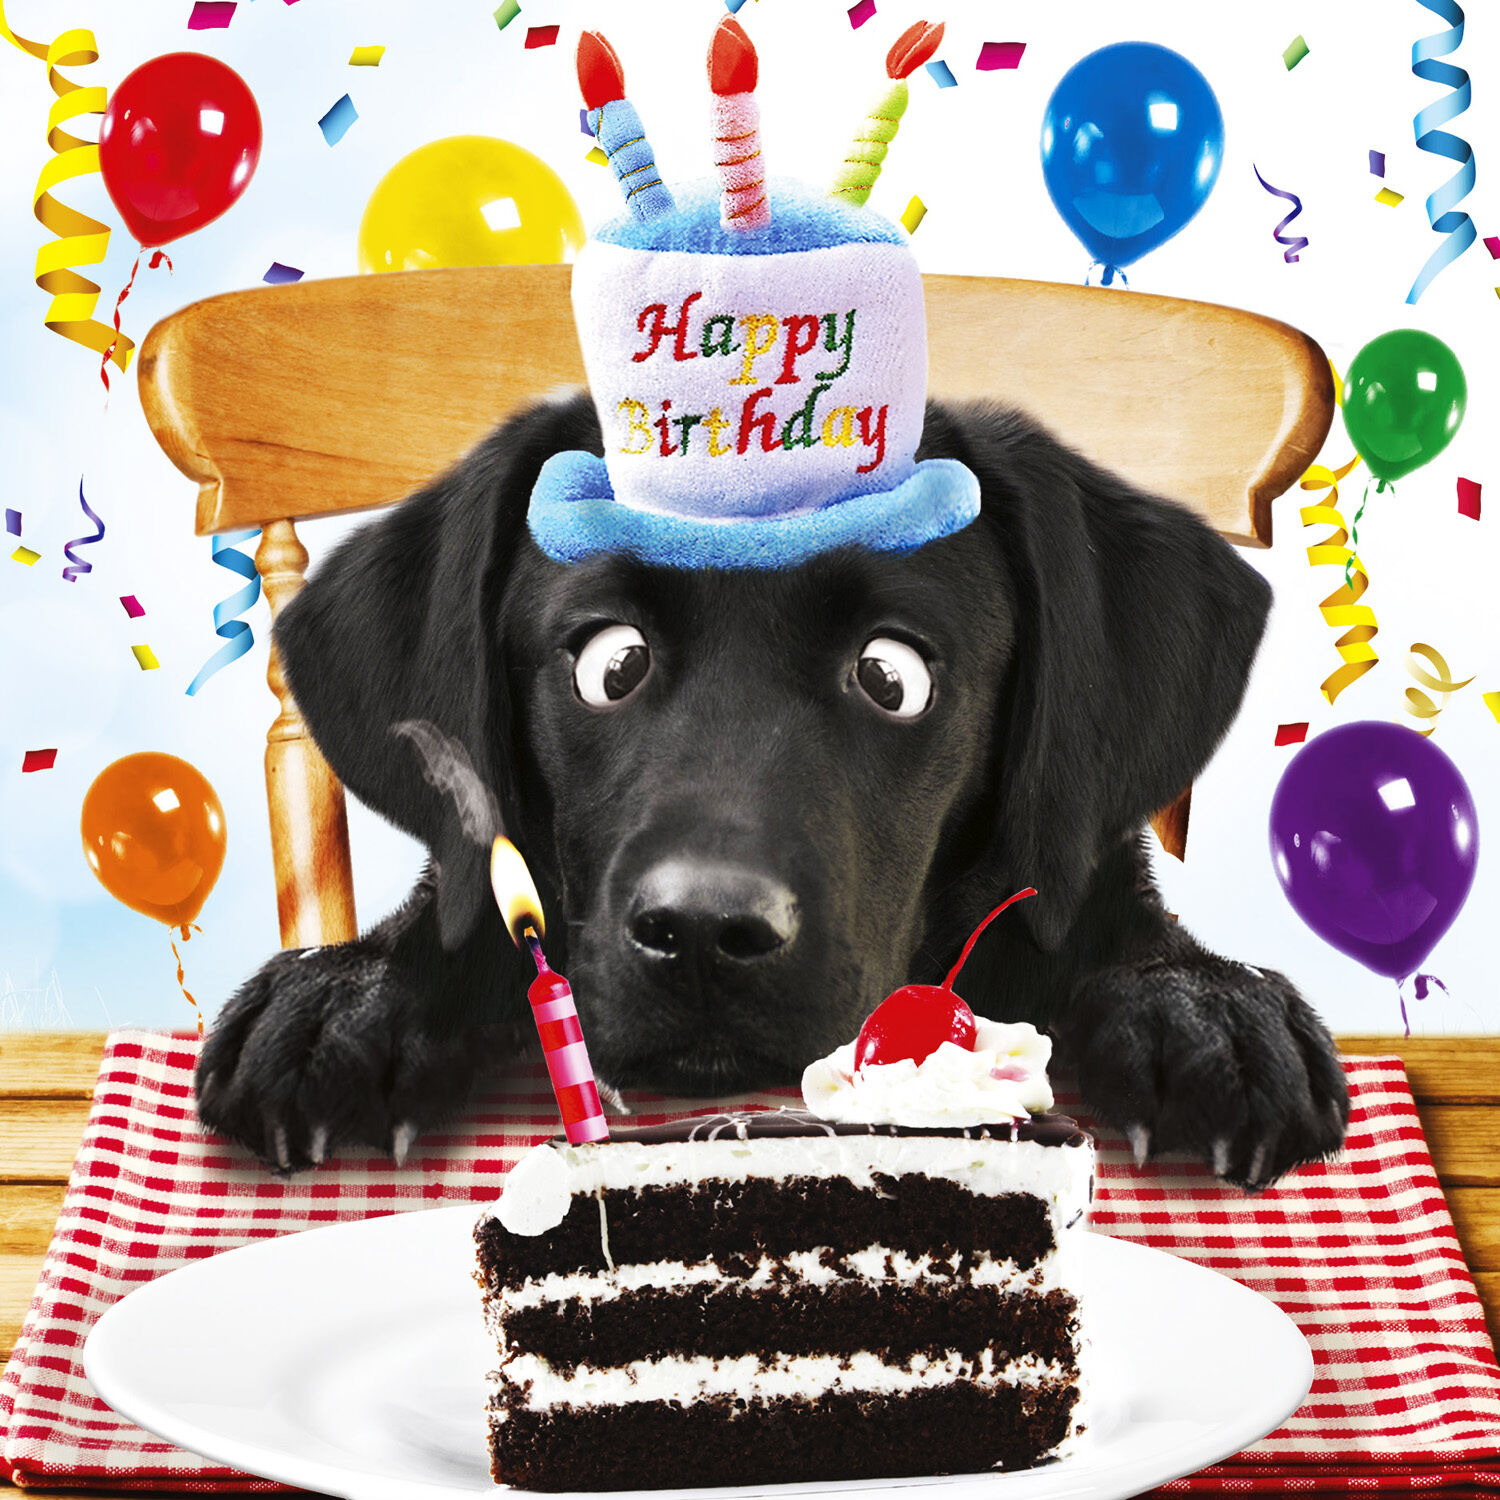 black labrador birthday card for me funny dog birthday cake greeting card new ebay. Black Bedroom Furniture Sets. Home Design Ideas